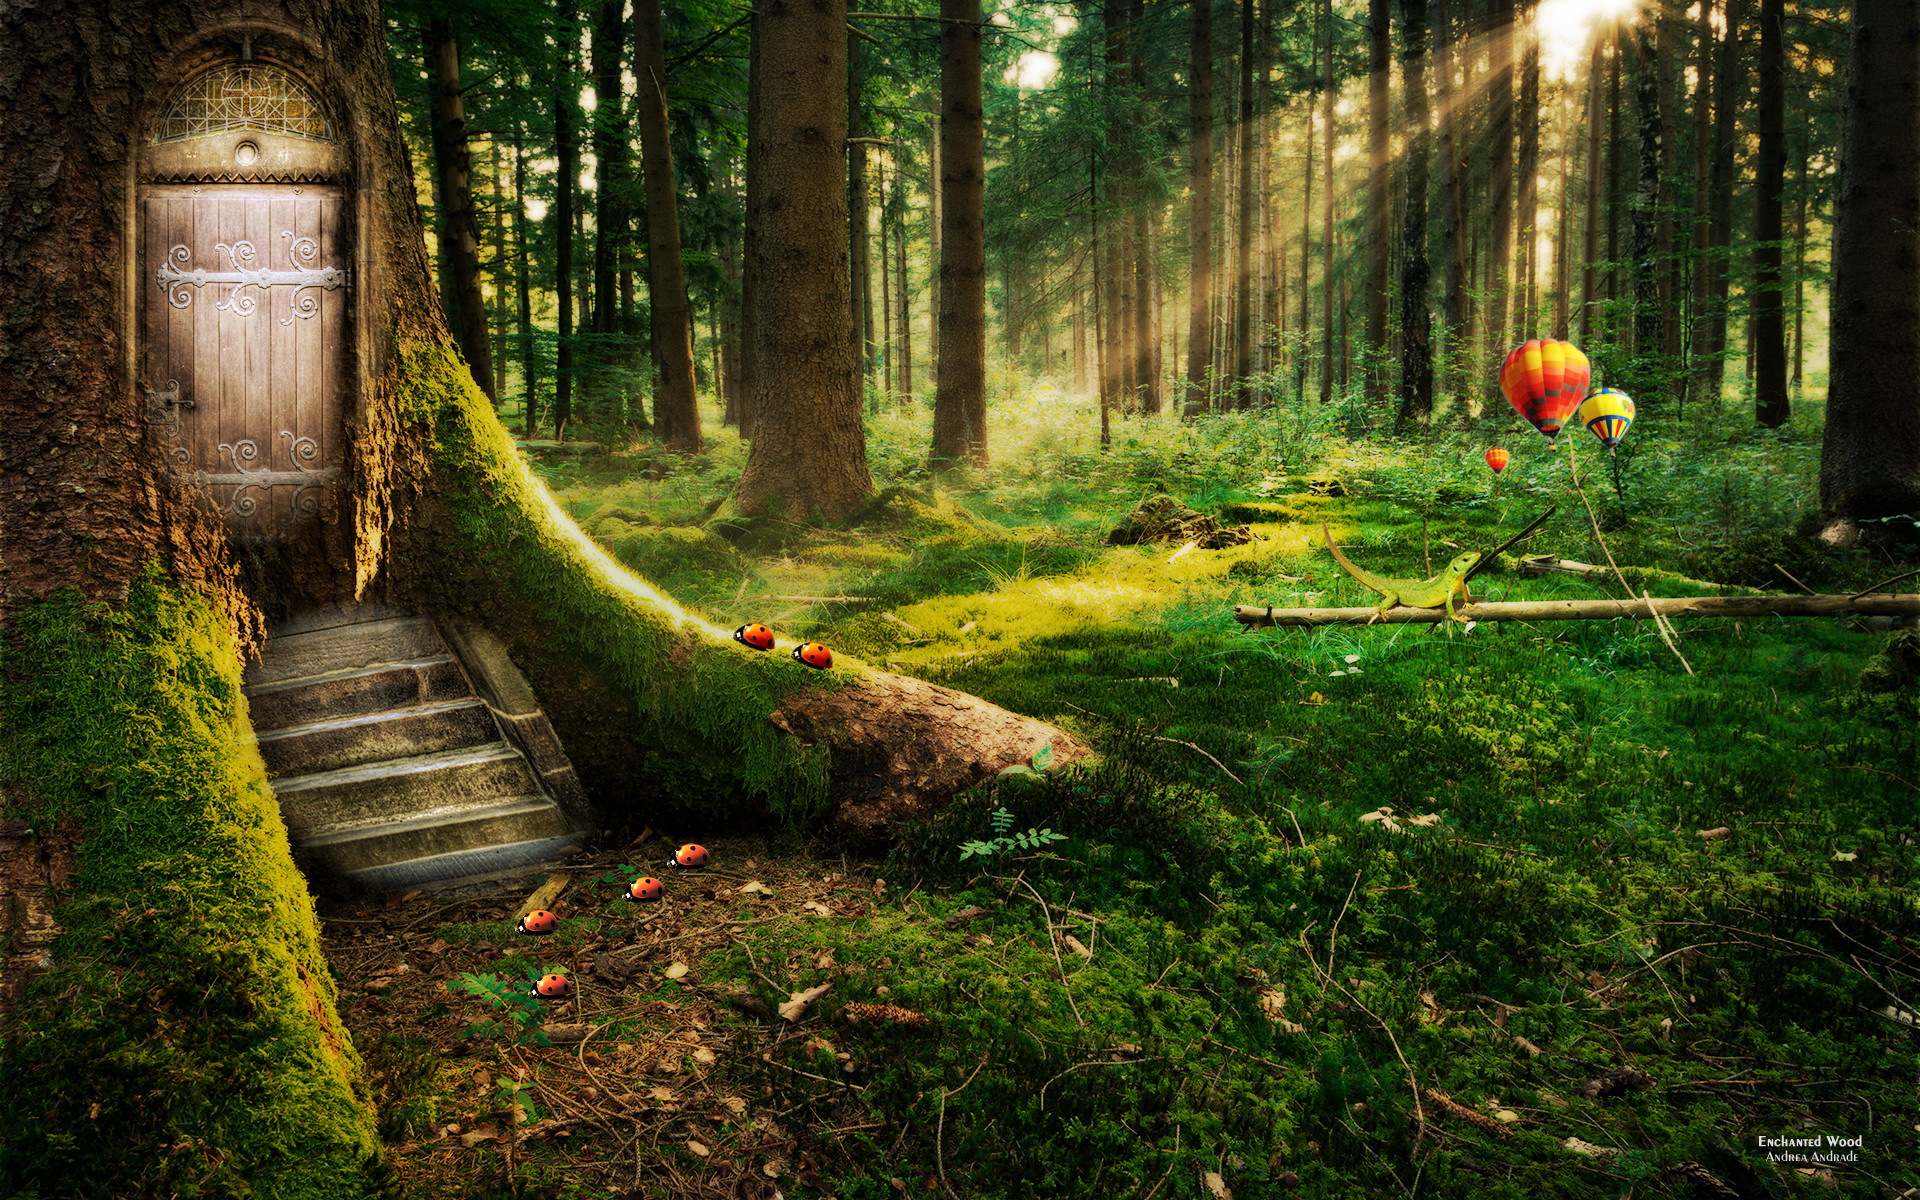 enchanted forest   Tree With a Door Enchanted Forest Hd wallpaper – HD  Wallpapers